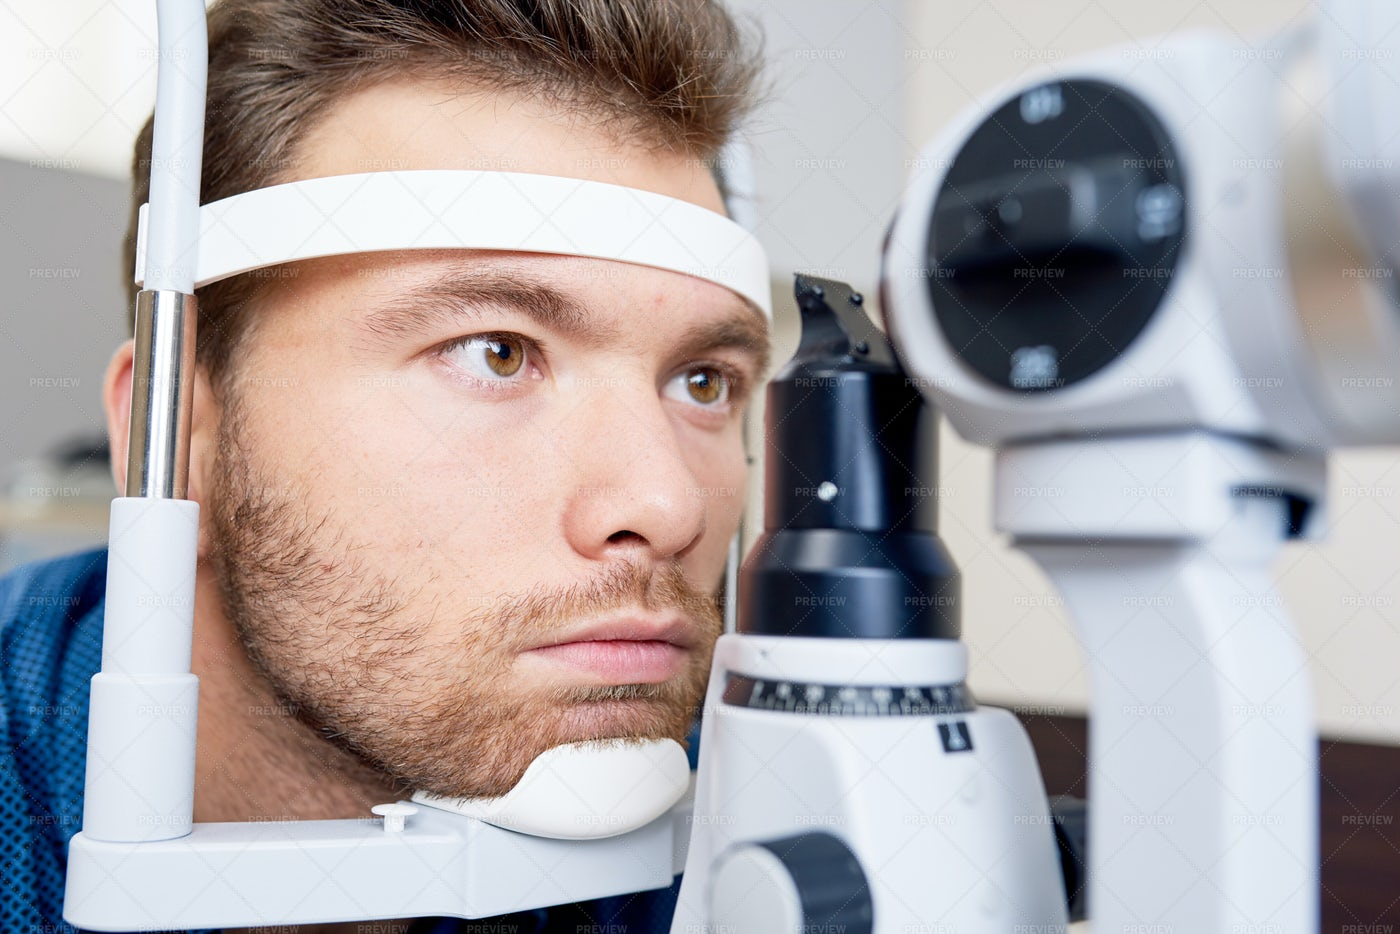 Patient At Ophthalmologists Close...: Stock Photos